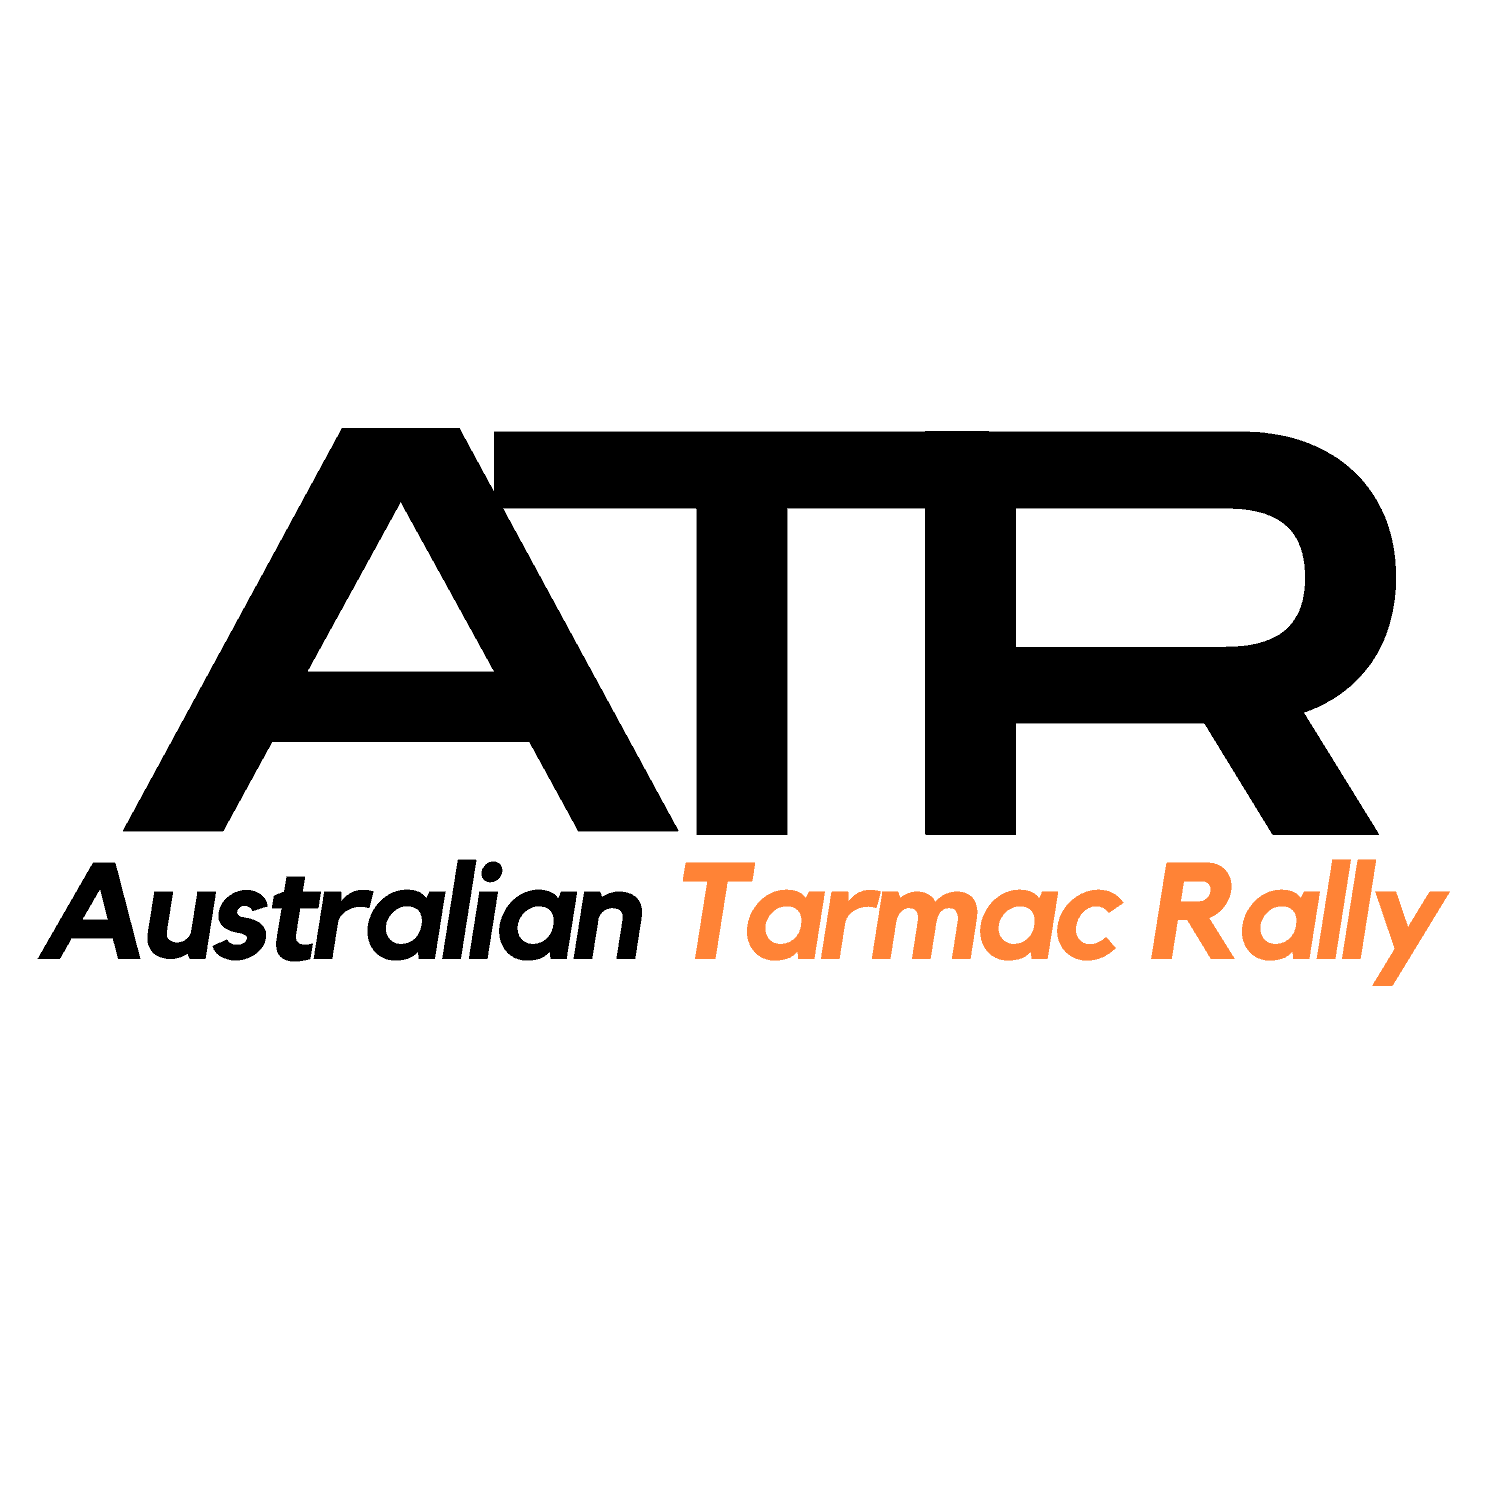 Australian Tarmac Rally Pty Limited